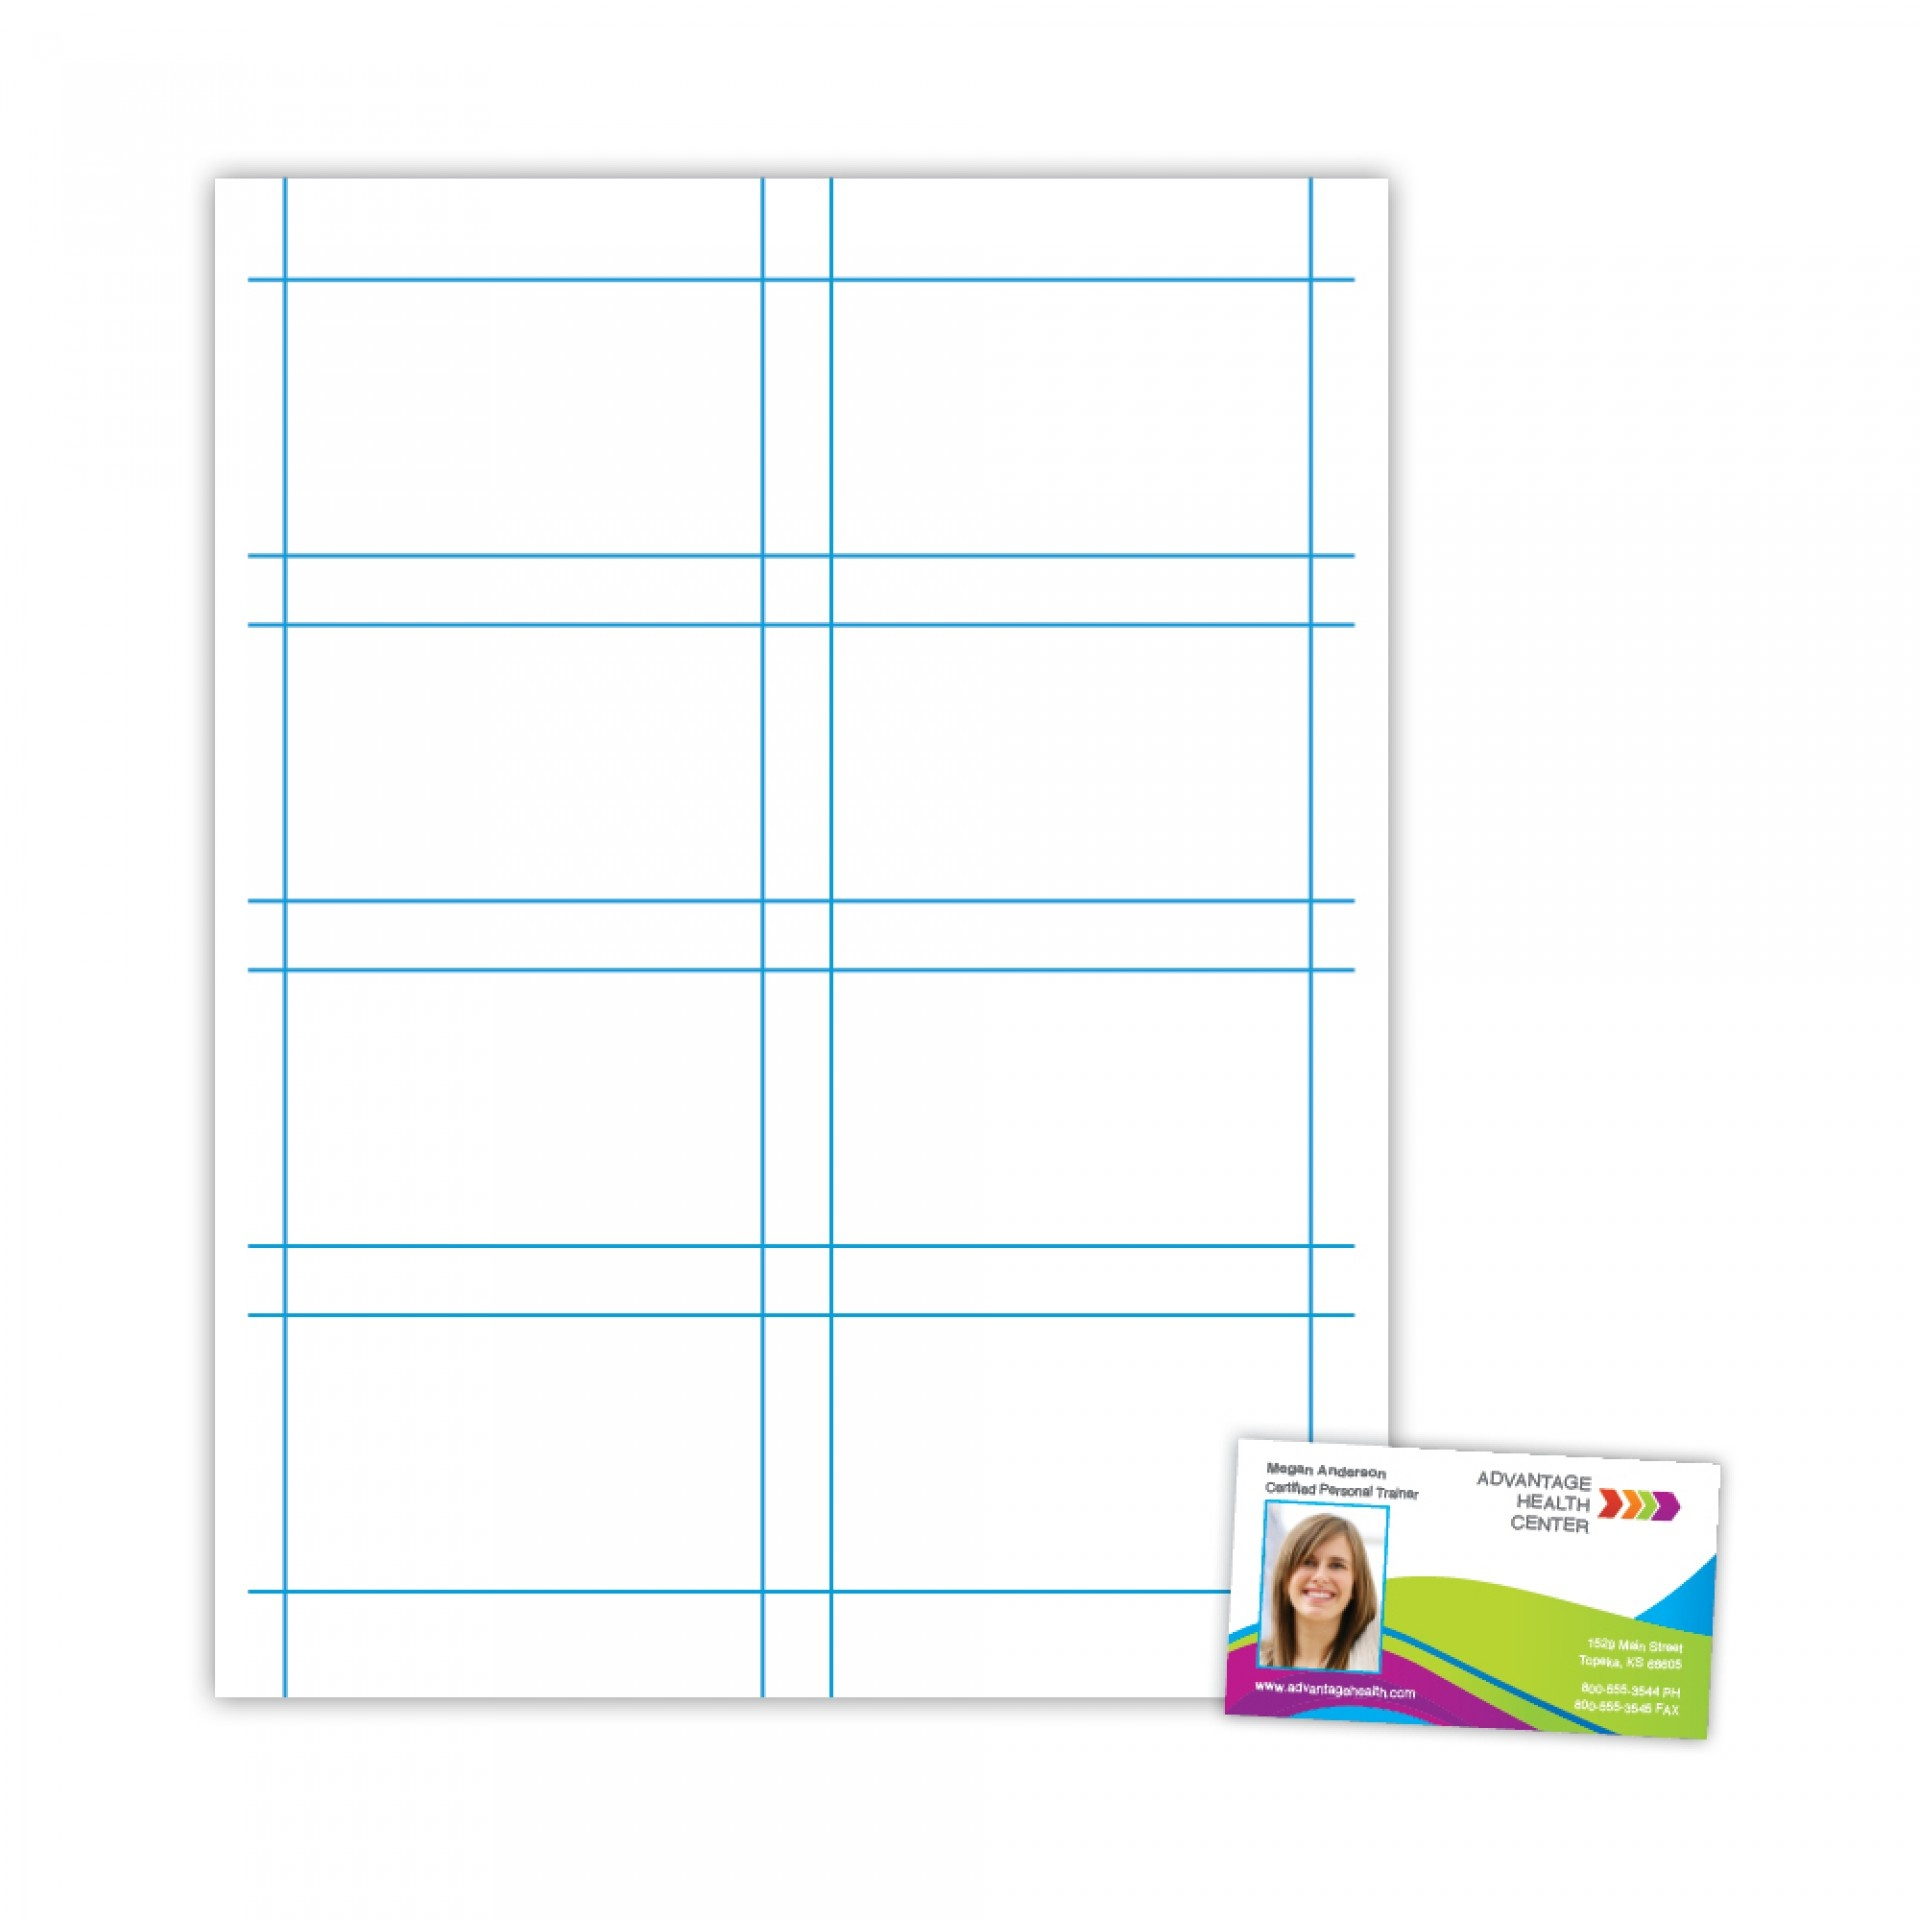 022 Blank Business Card Template Free Then Printable Cards Templates - Free Printable Blank Business Cards